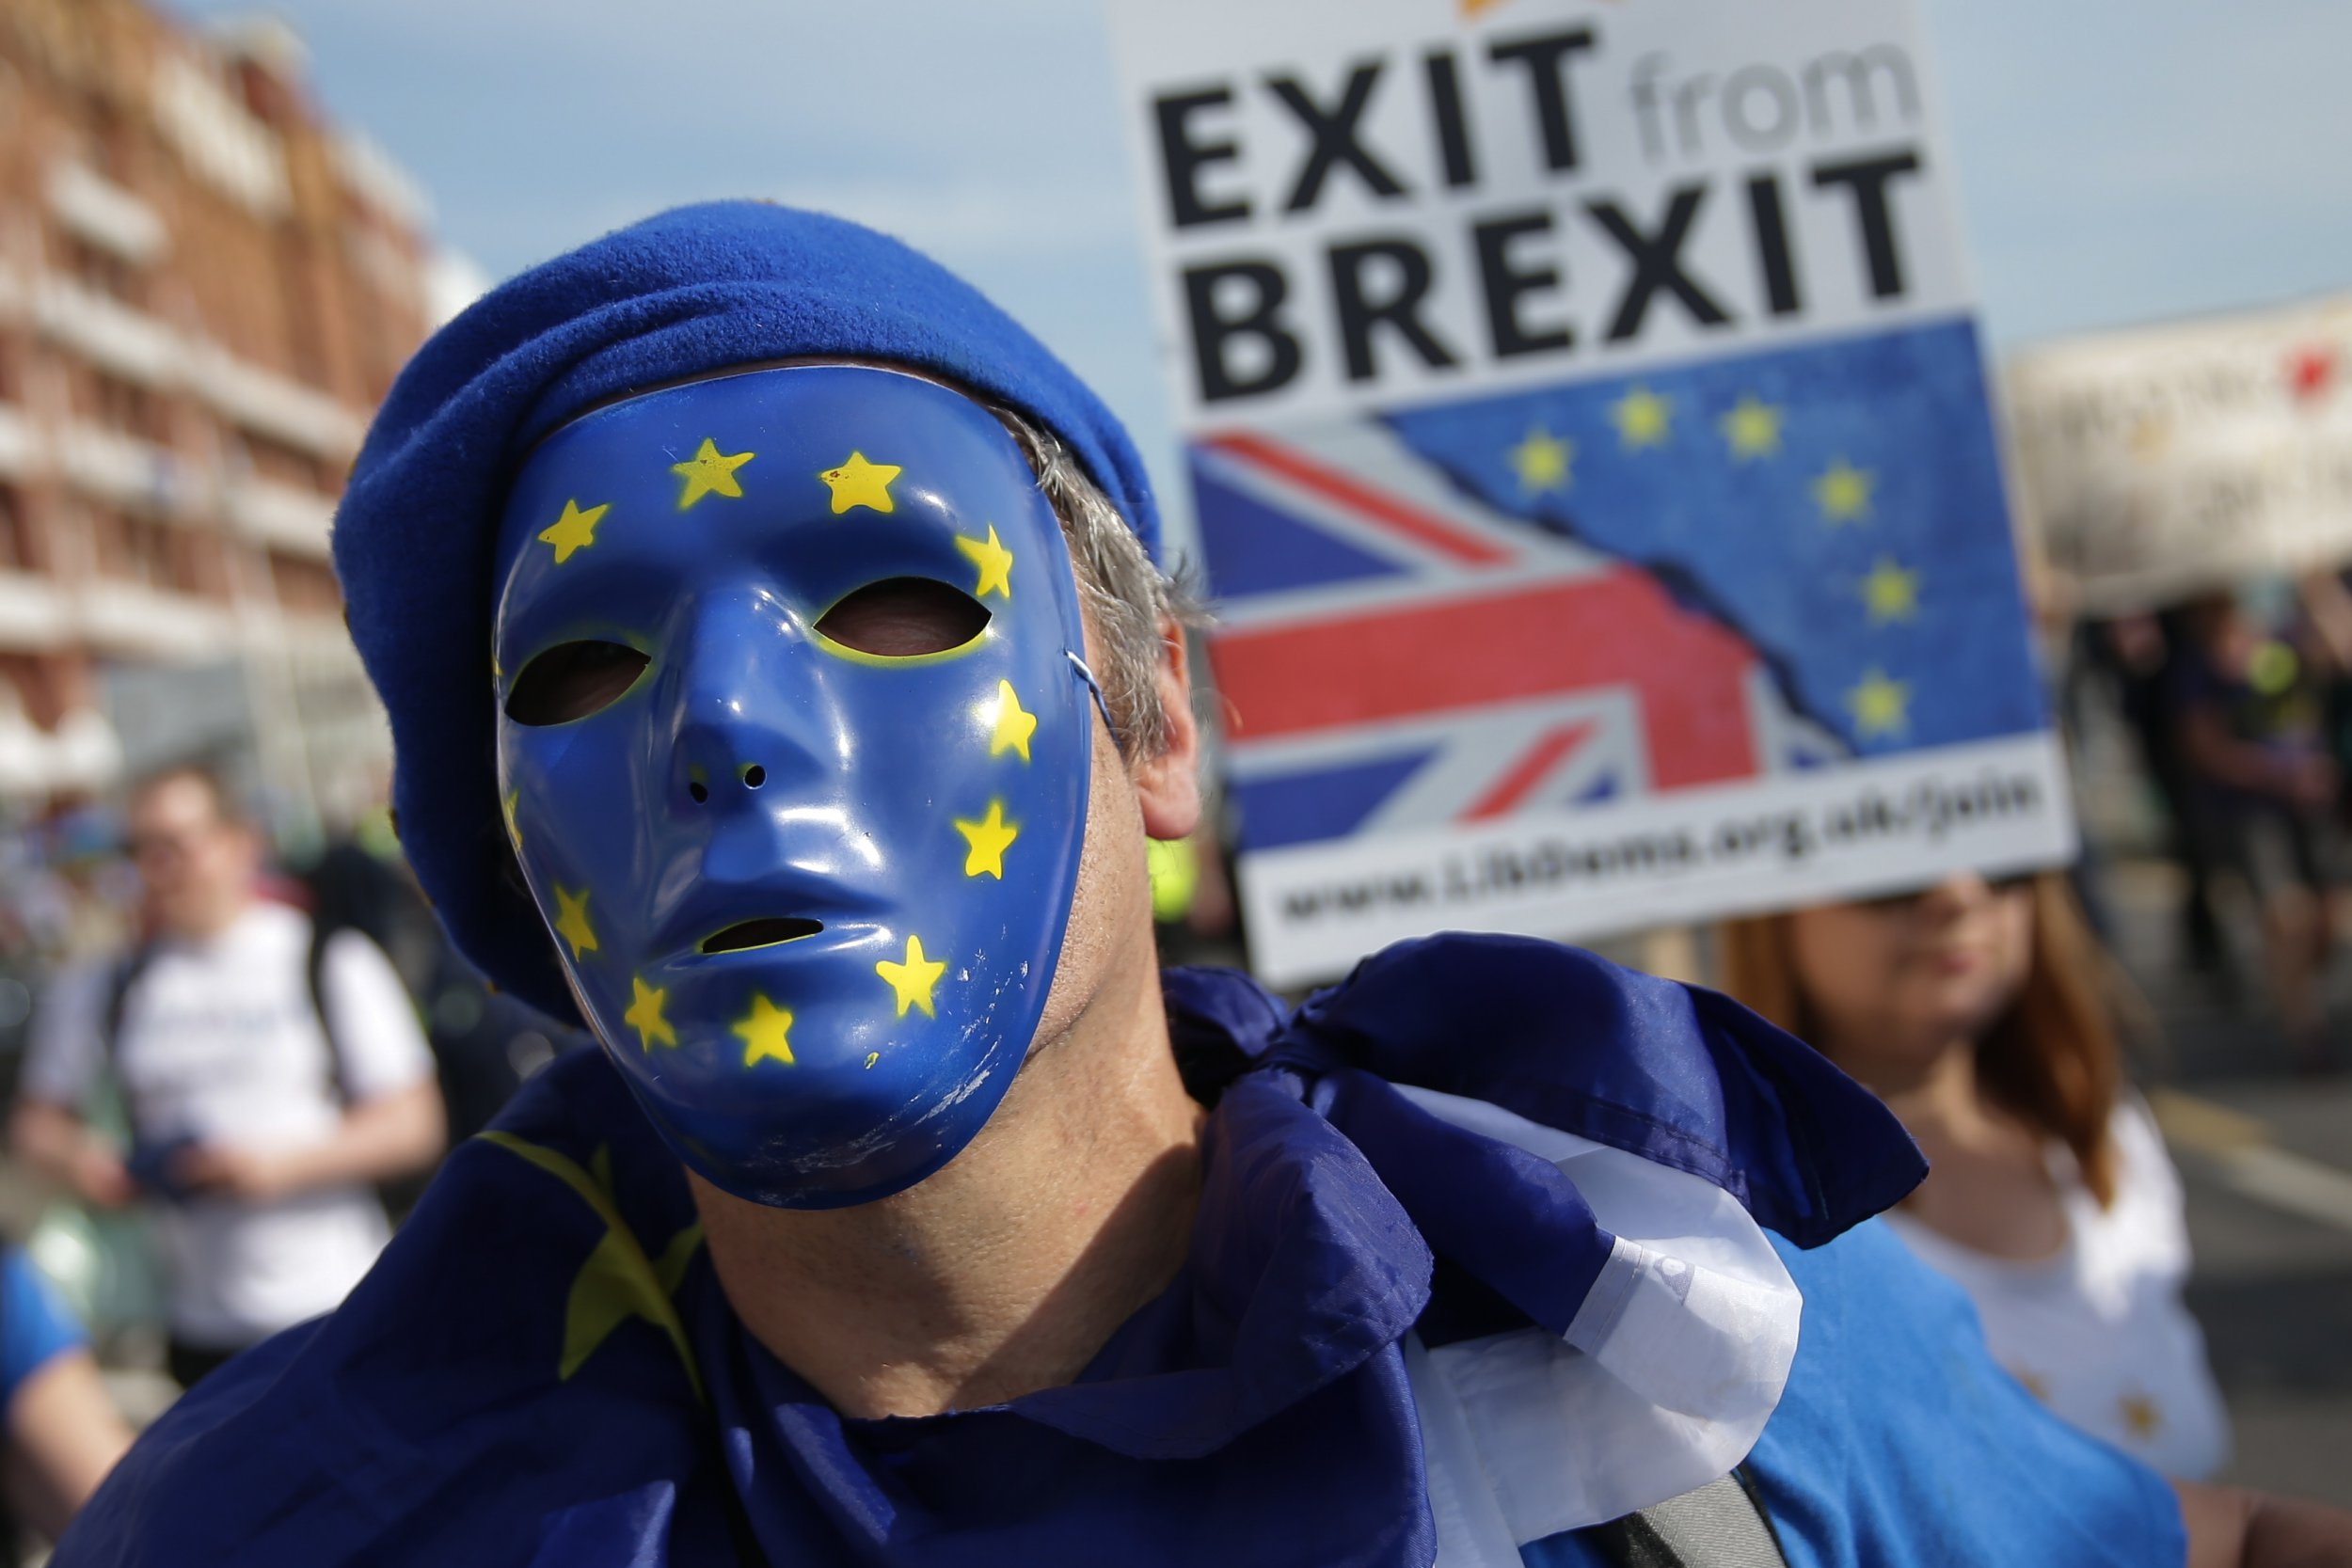 Protesters march along the seafront holding placards and waving European and Union flags in Brighton on September 24, 2017, on a march against Brexit. Britain's revitalised Labour opposition kicks off its annual conference today with leader Jeremy Corbyn set to lay out his party's agenda, free from the leadership challenges of previous years. / AFP PHOTO / Daniel LEAL-OLIVAS (Photo credit should read DANIEL LEAL-OLIVAS/AFP/Getty Images)